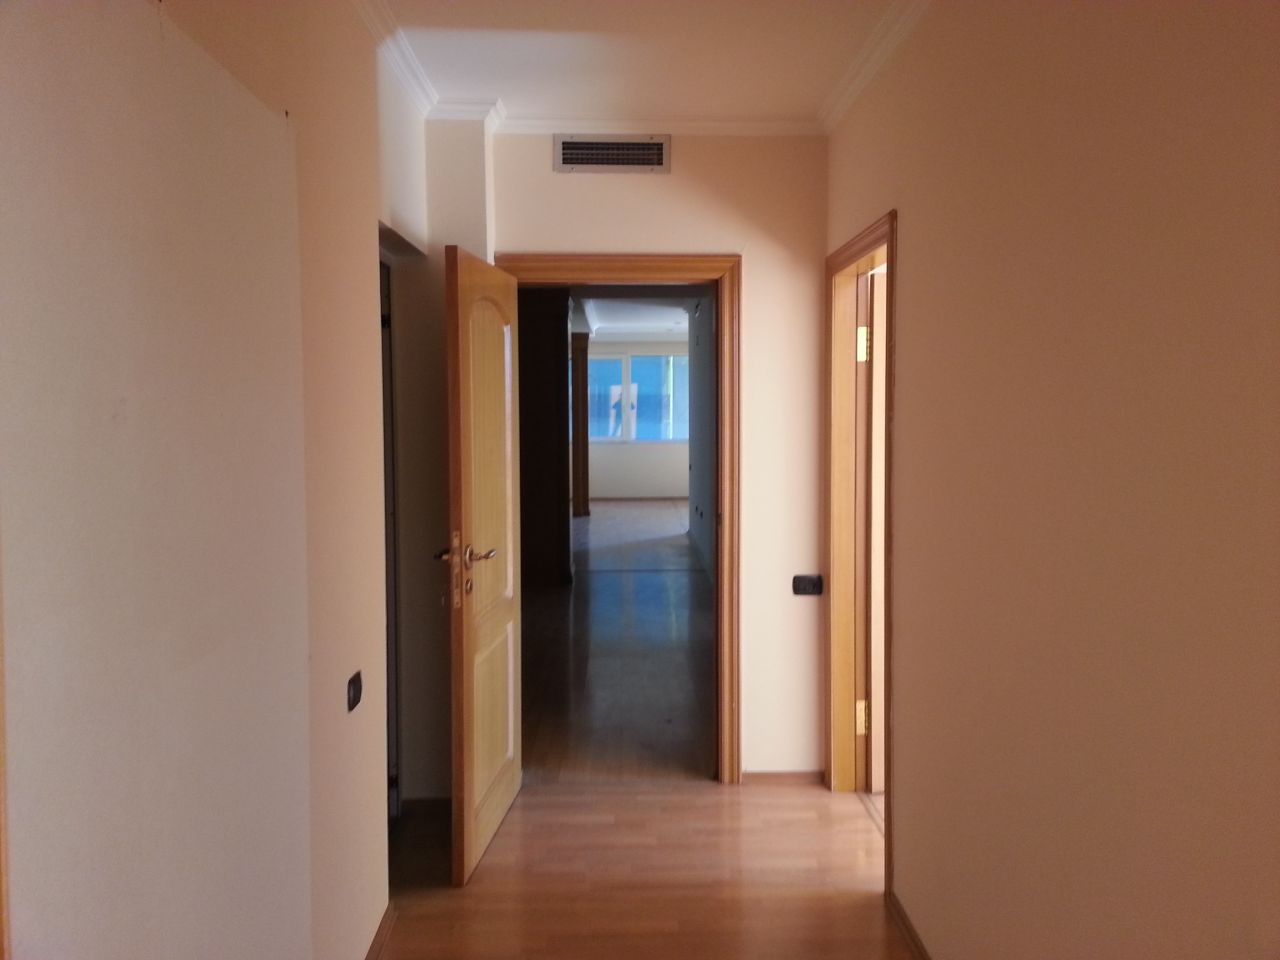 Office for rent in Tirana, Commercial Albania Real Estate in Tirana.